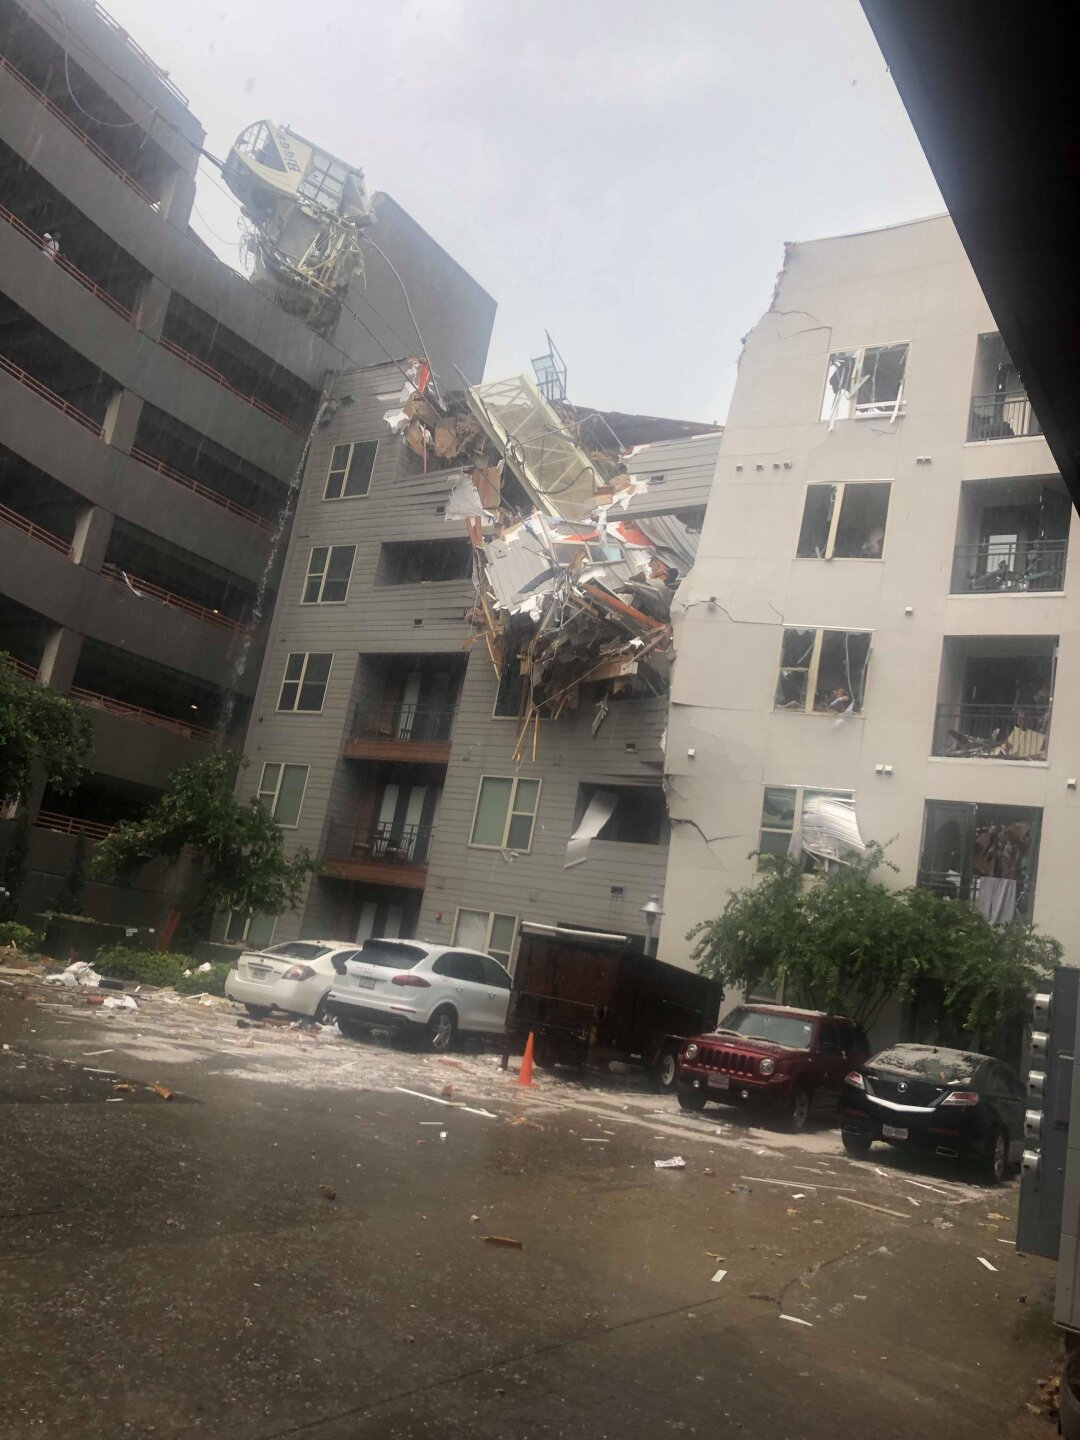 Photos: At least 1 dead, 6 injured after crane falls on Dallas apartment building